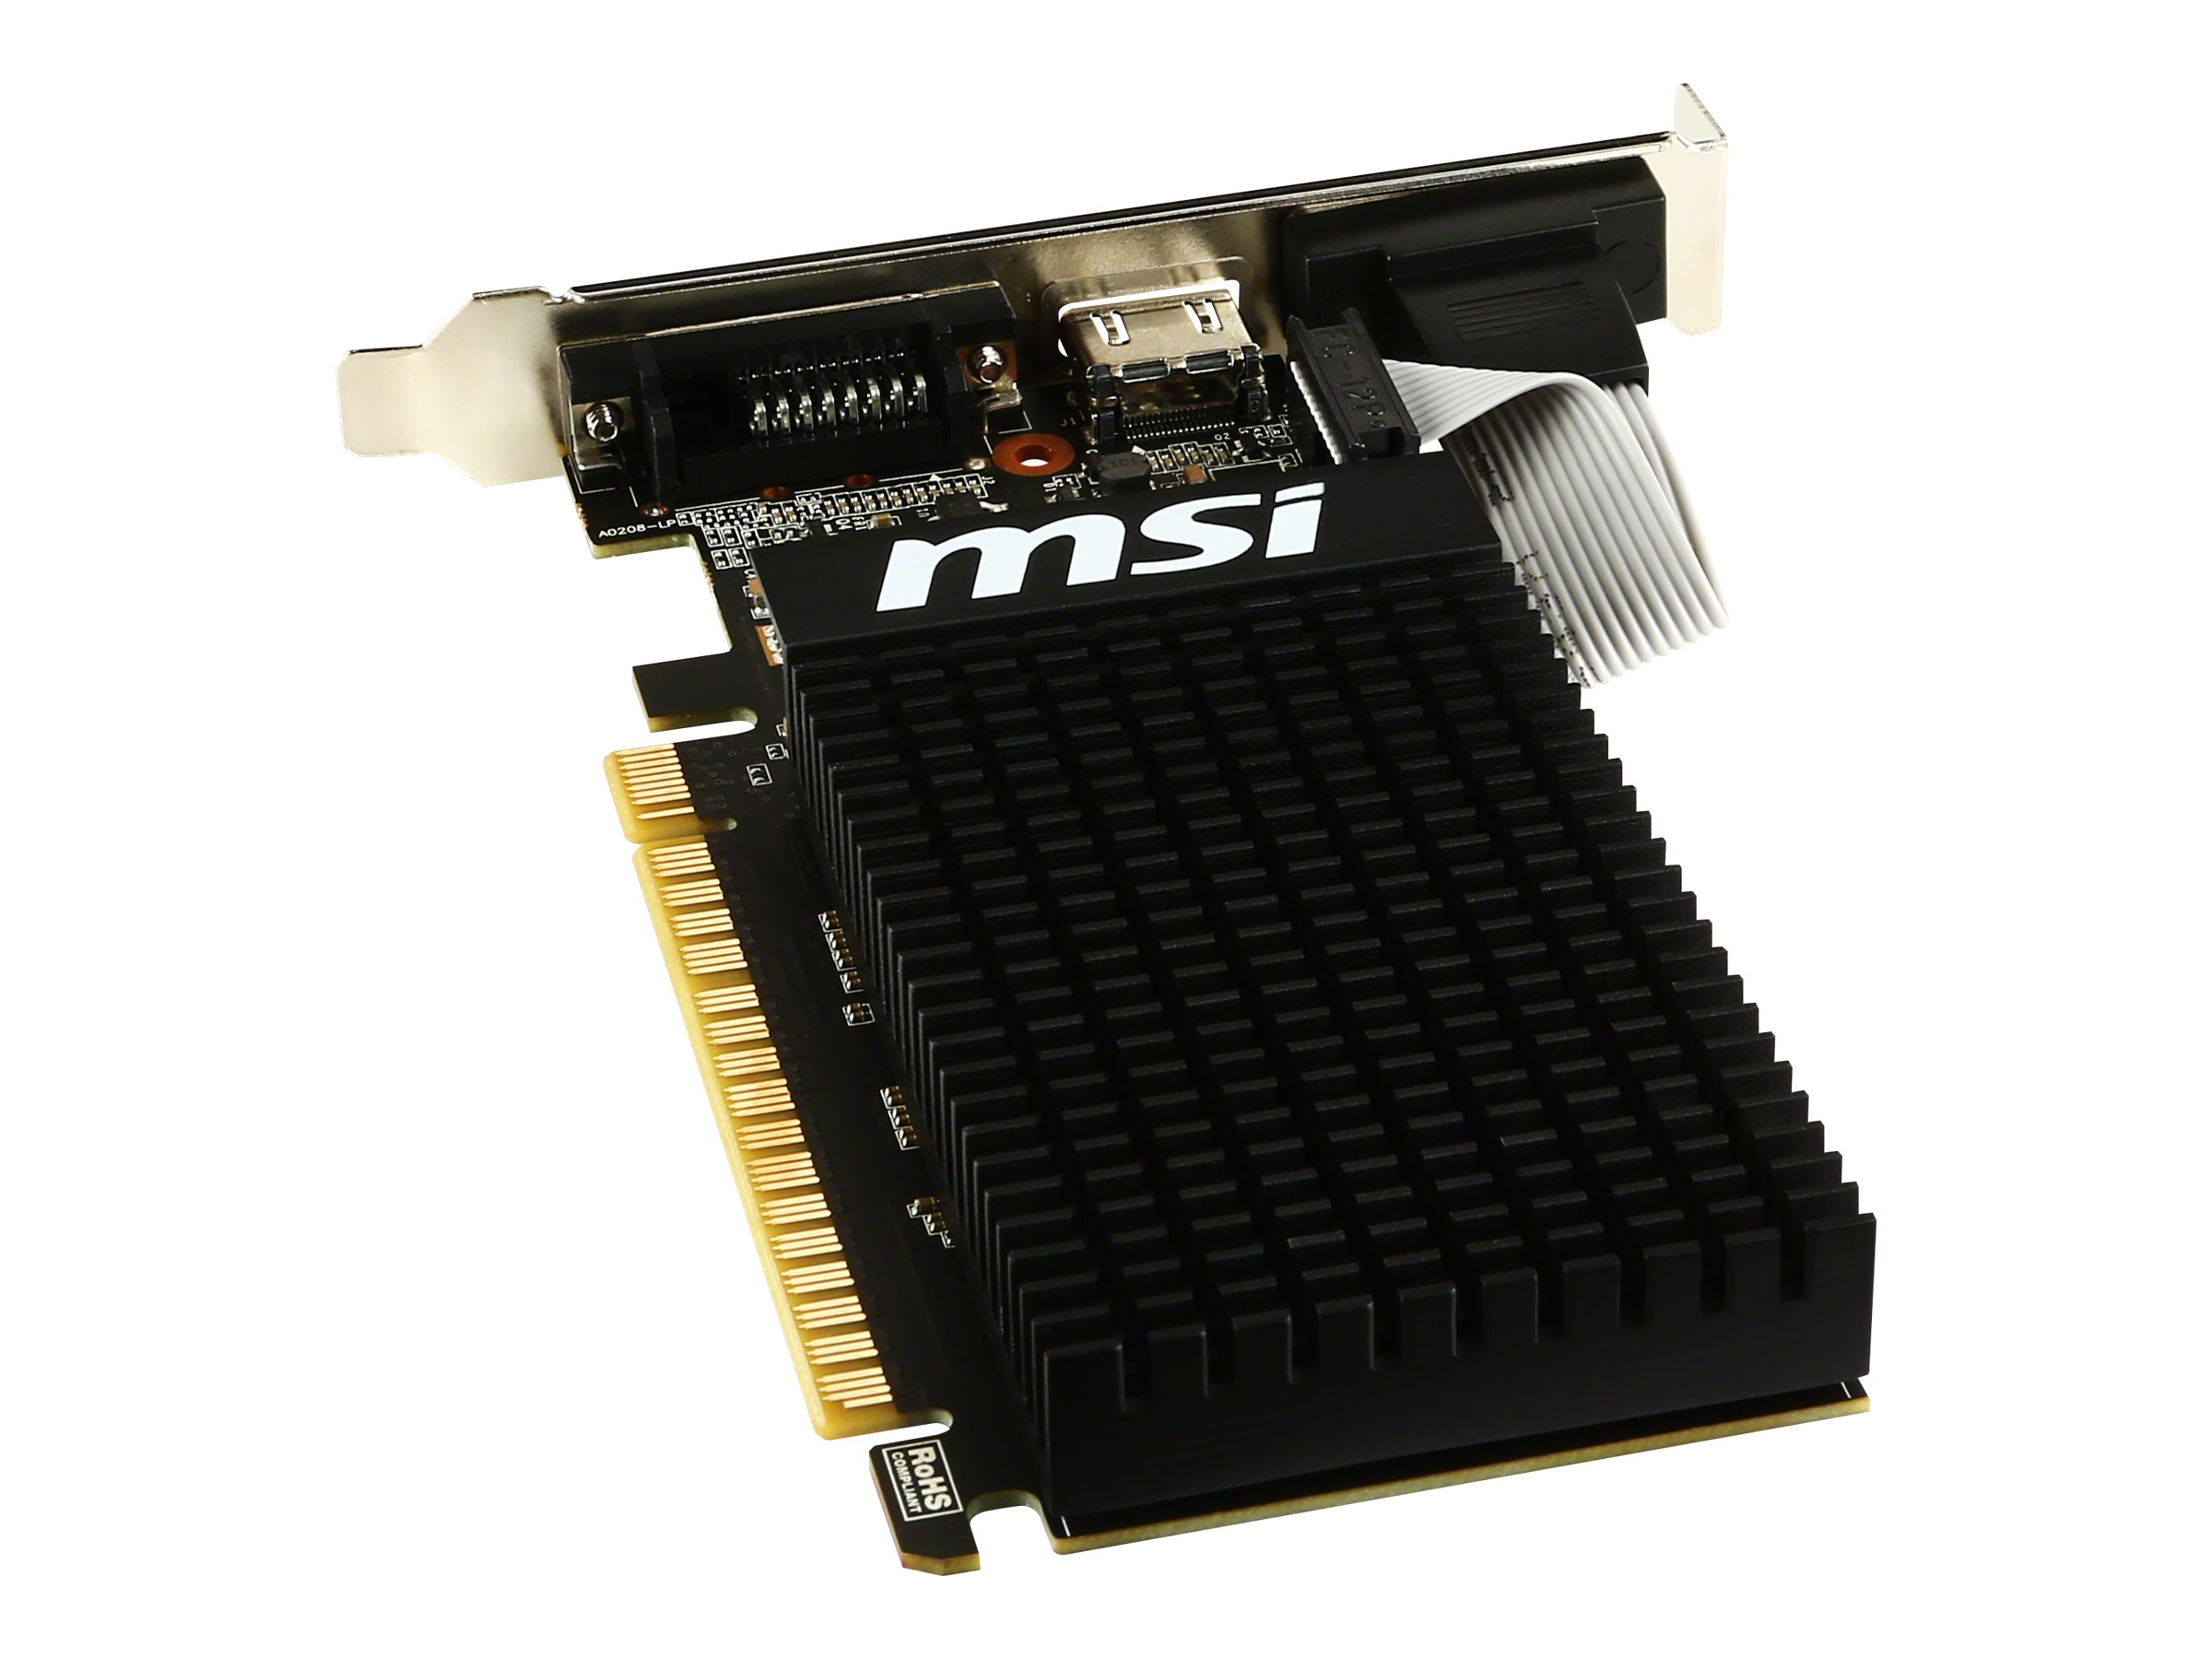 Microstar GeForce GT 710 PCIe 2.0 x8 Graphics Card, 1GB DDR3, GT 710 1GD3H LP, 31432885, Graphics/Video Accelerators